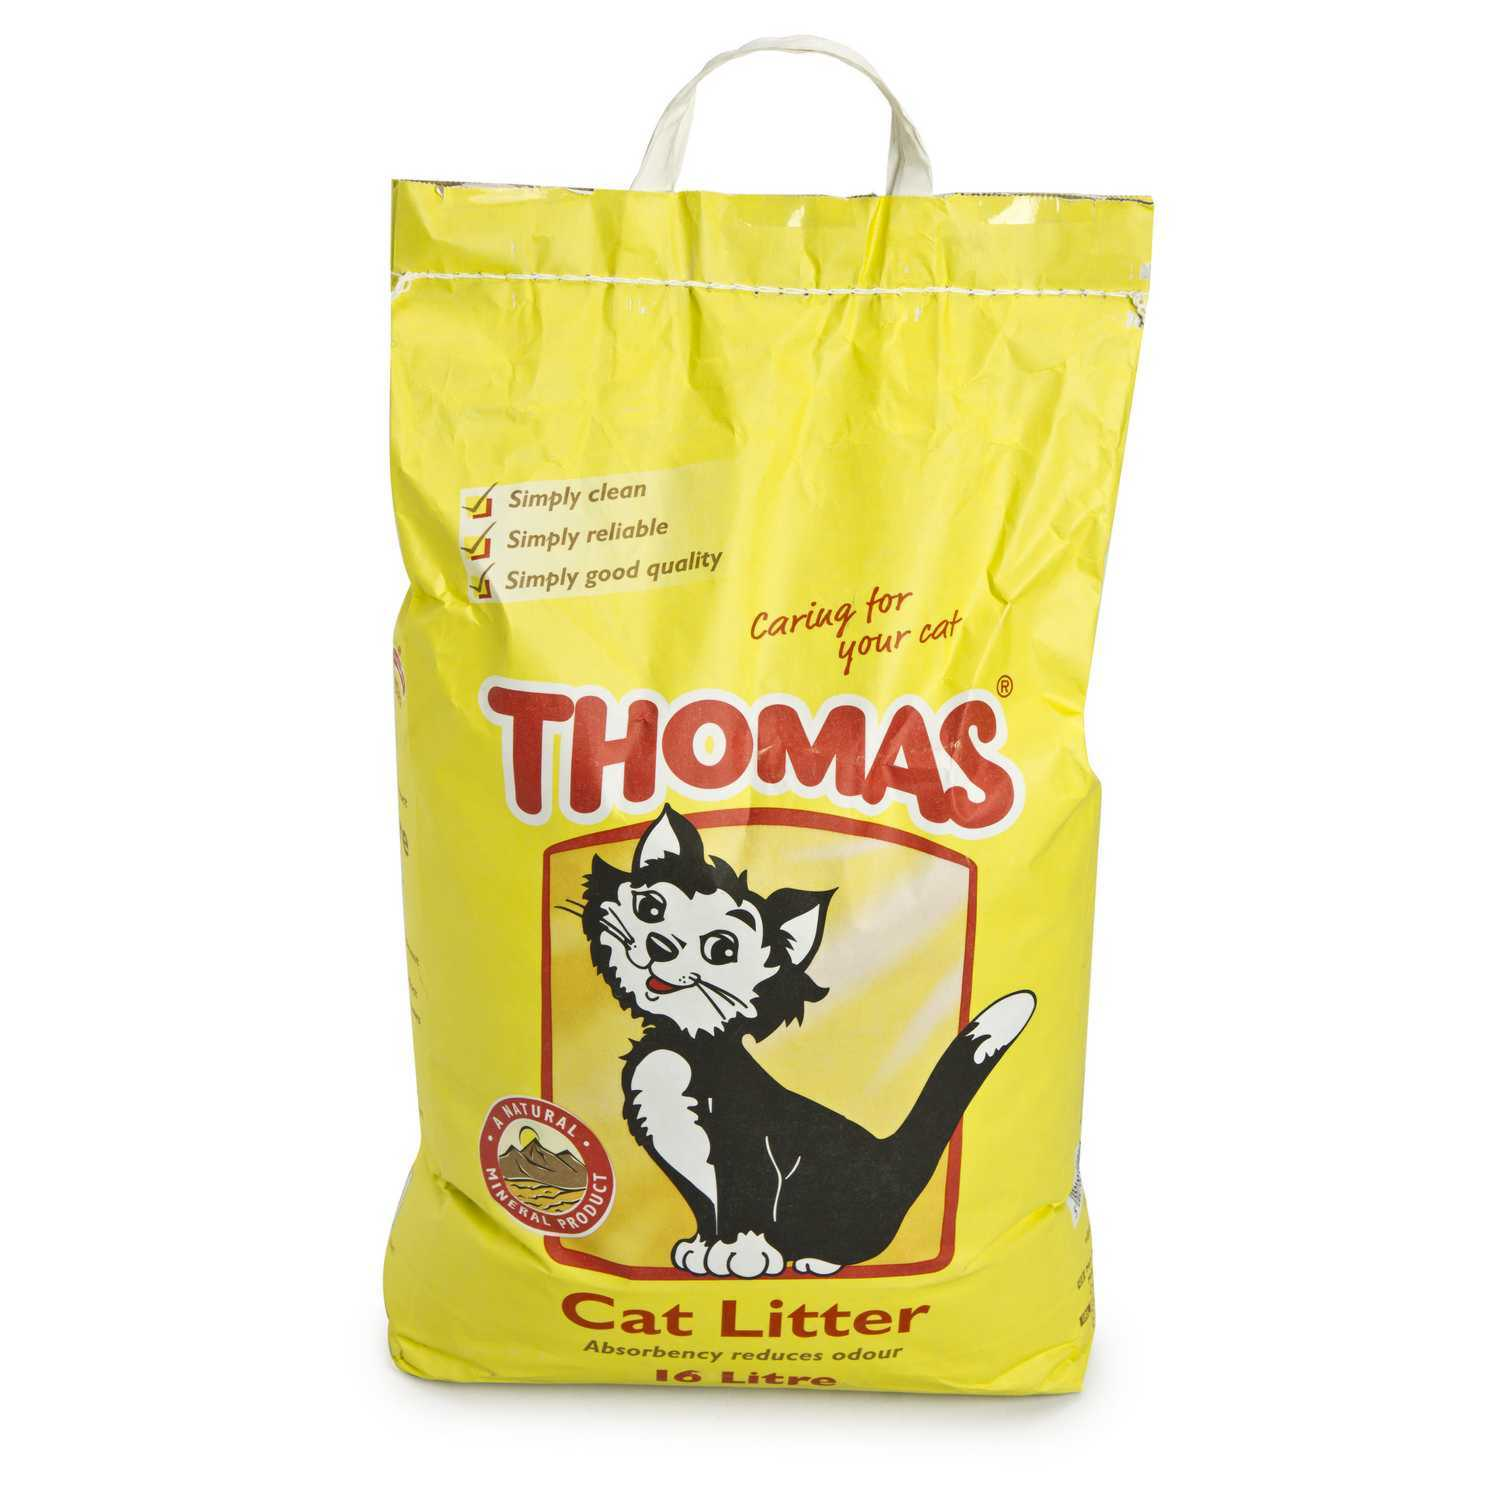 Thomas Cat Litter - Pet Food - Pet Store - Pet supplies